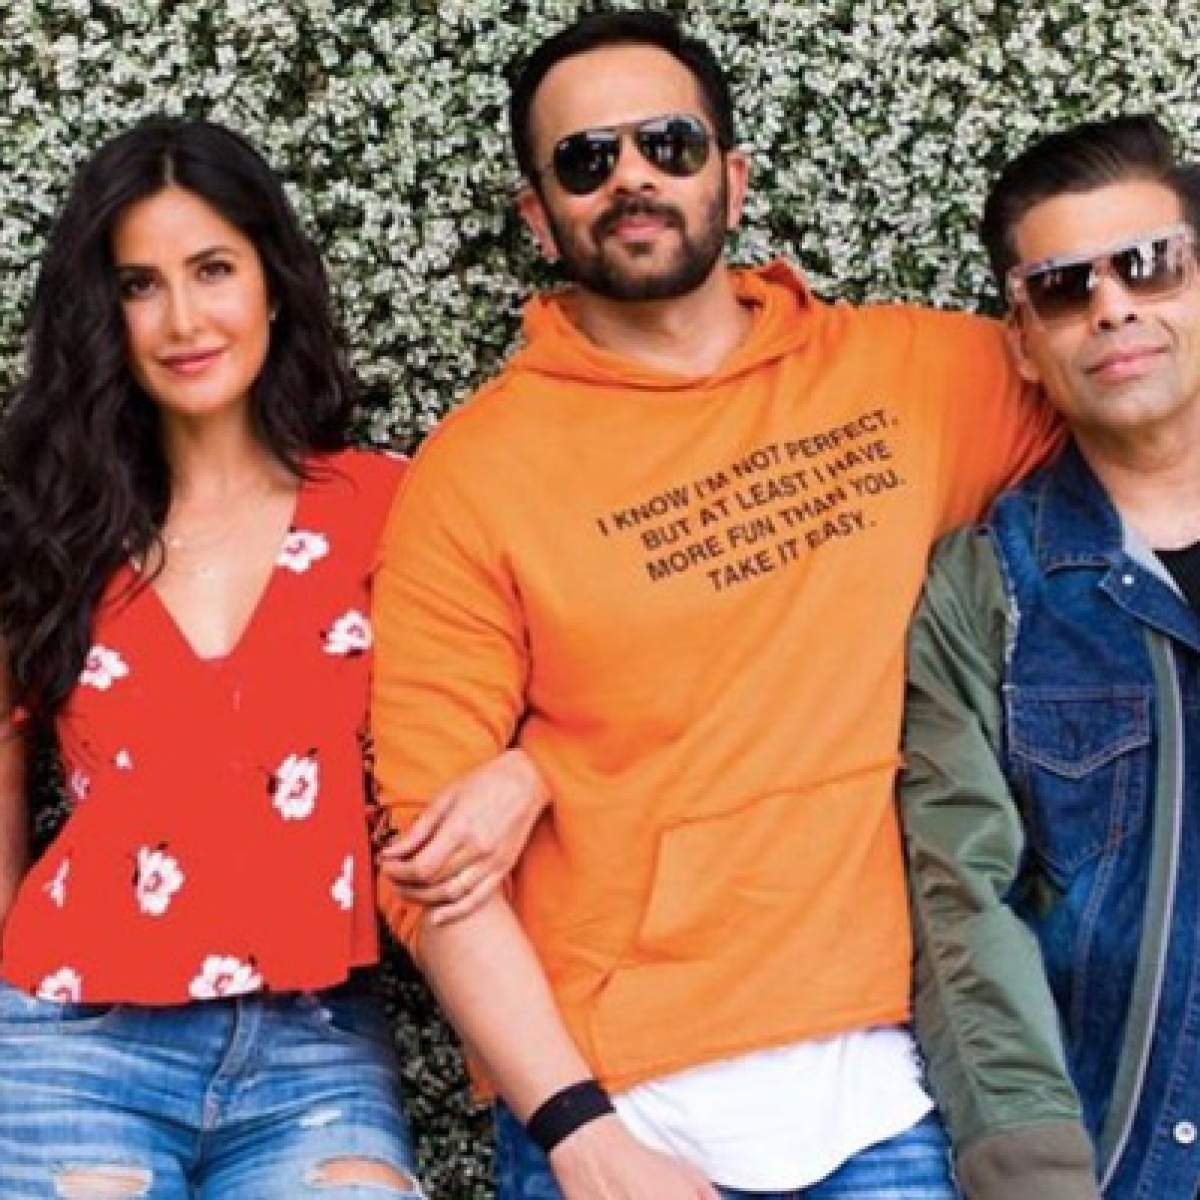 Angry Katrina Kaif fans trend 'Shame on you Rohit Shetty' on Twitter - here's why